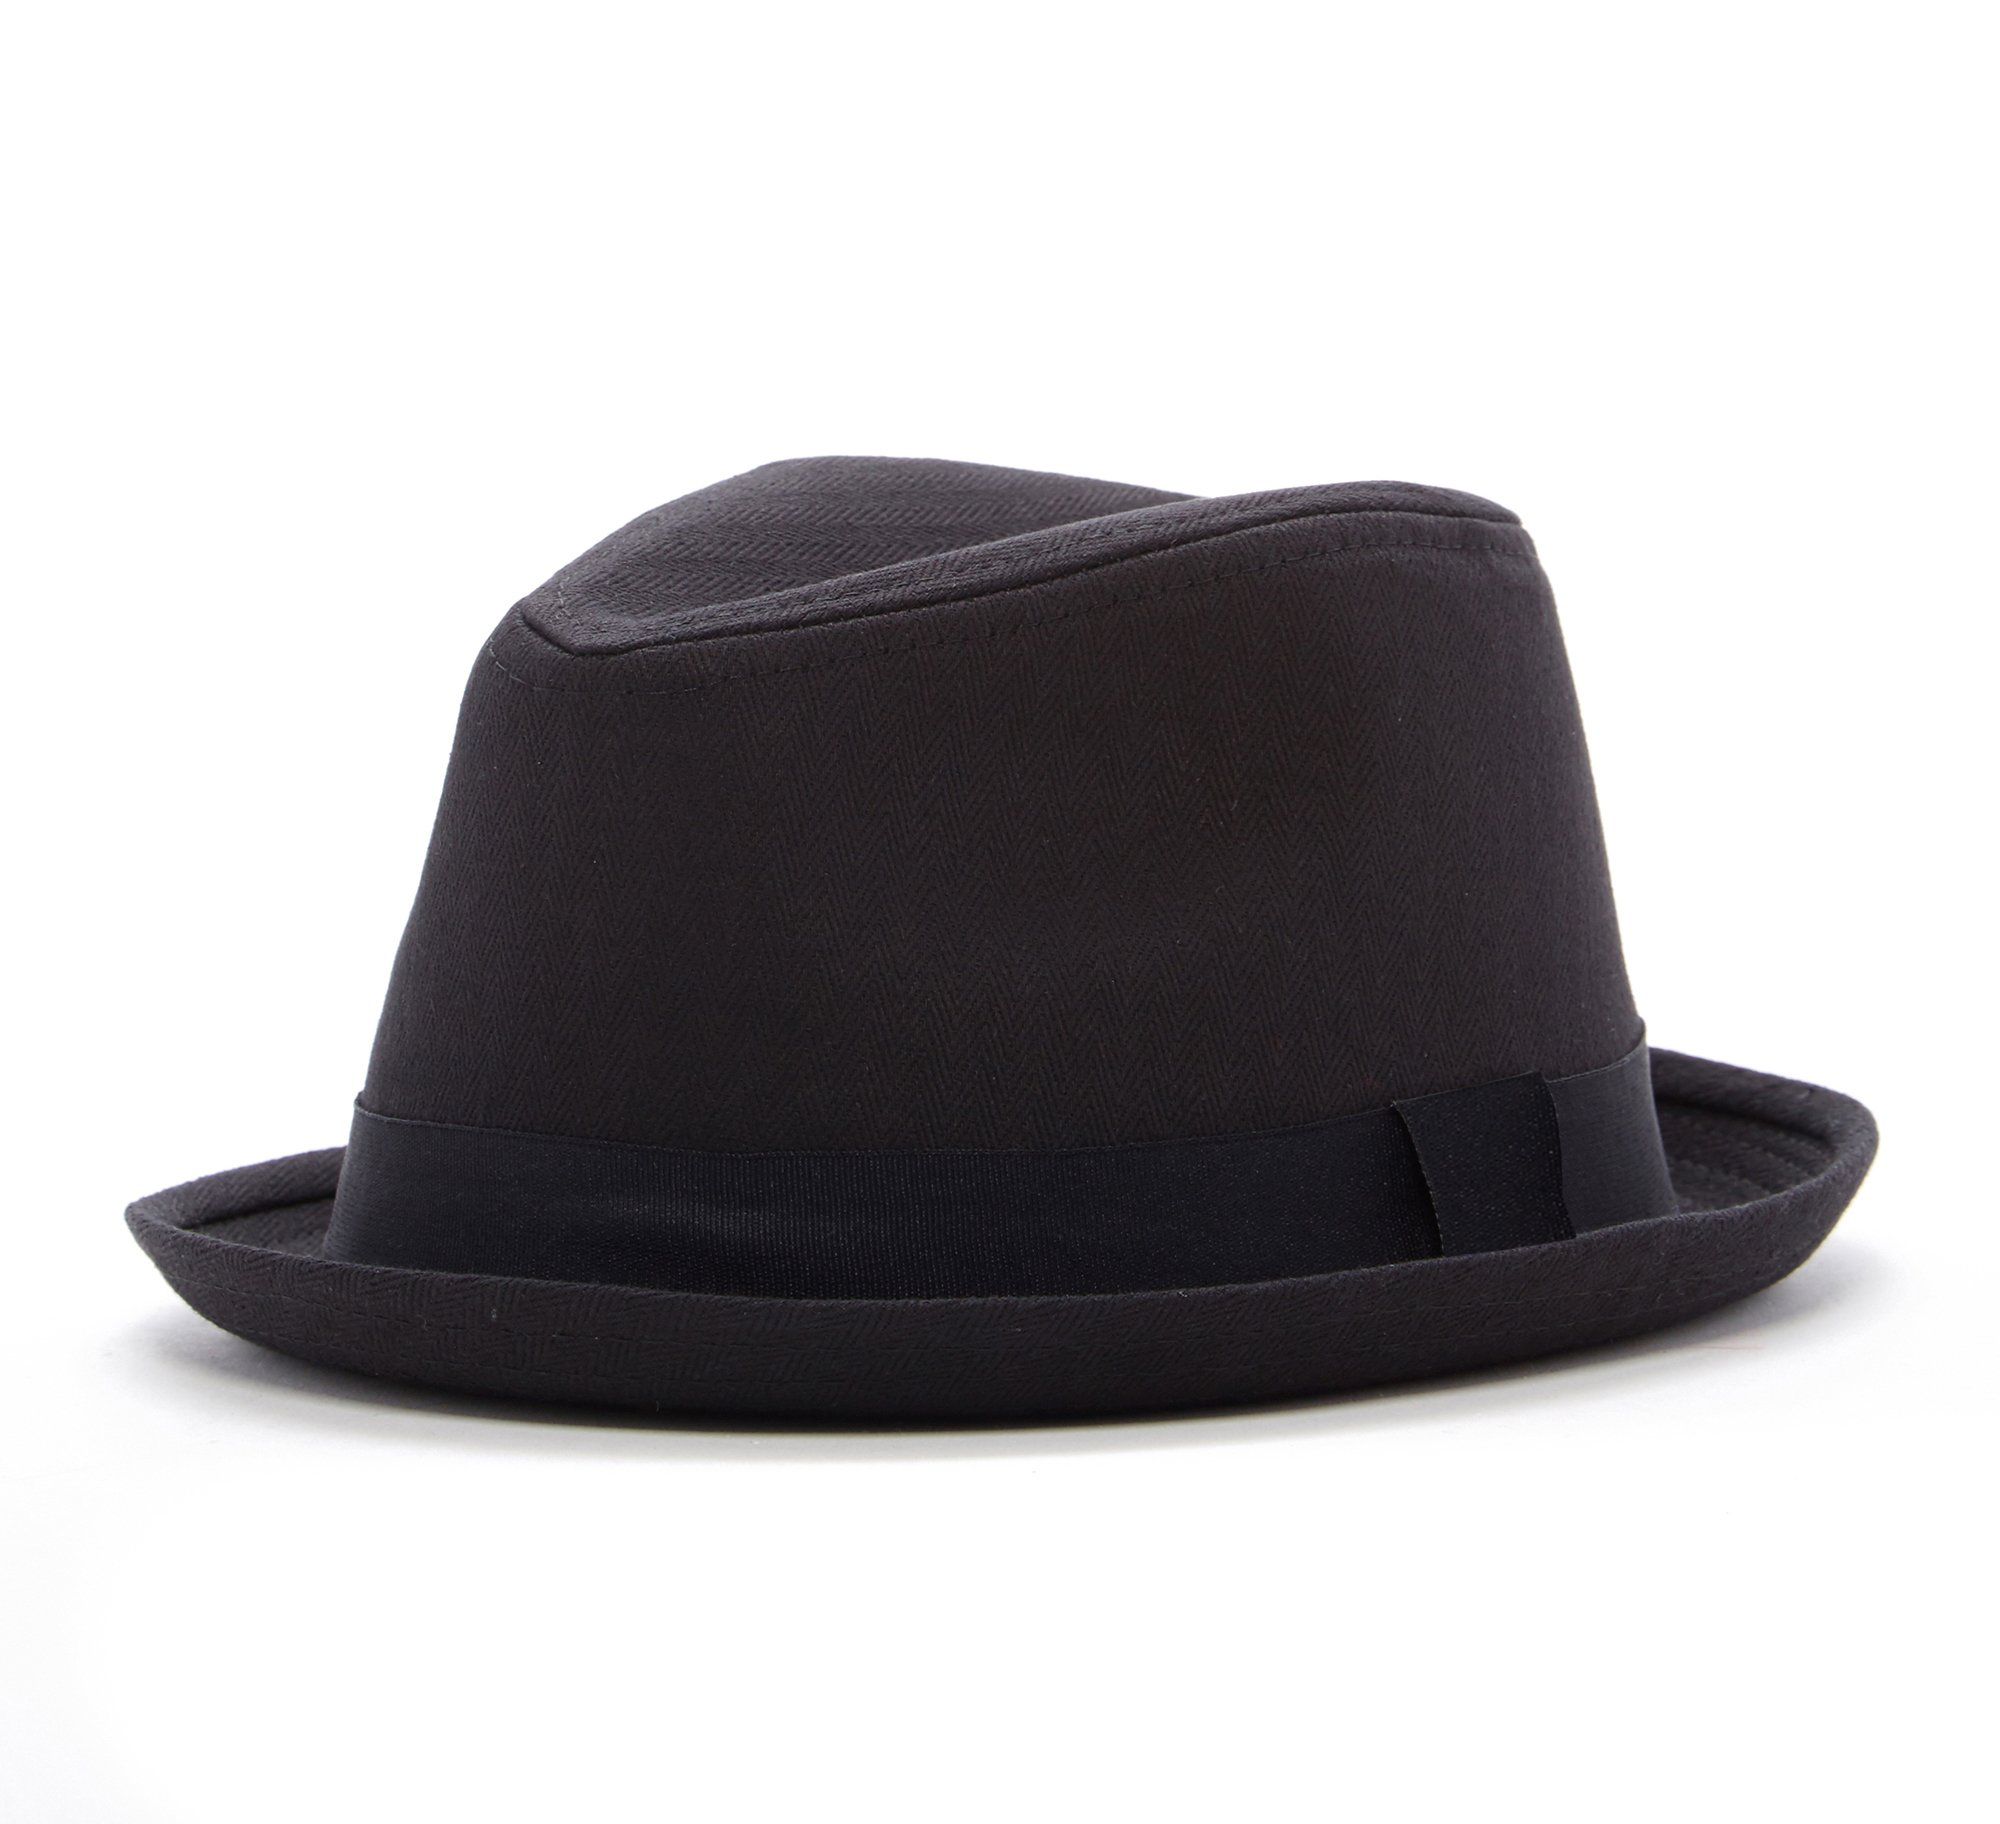 Born To Love Boy's Fedora Hat With Black Band 58 cm (8 Years - Up)